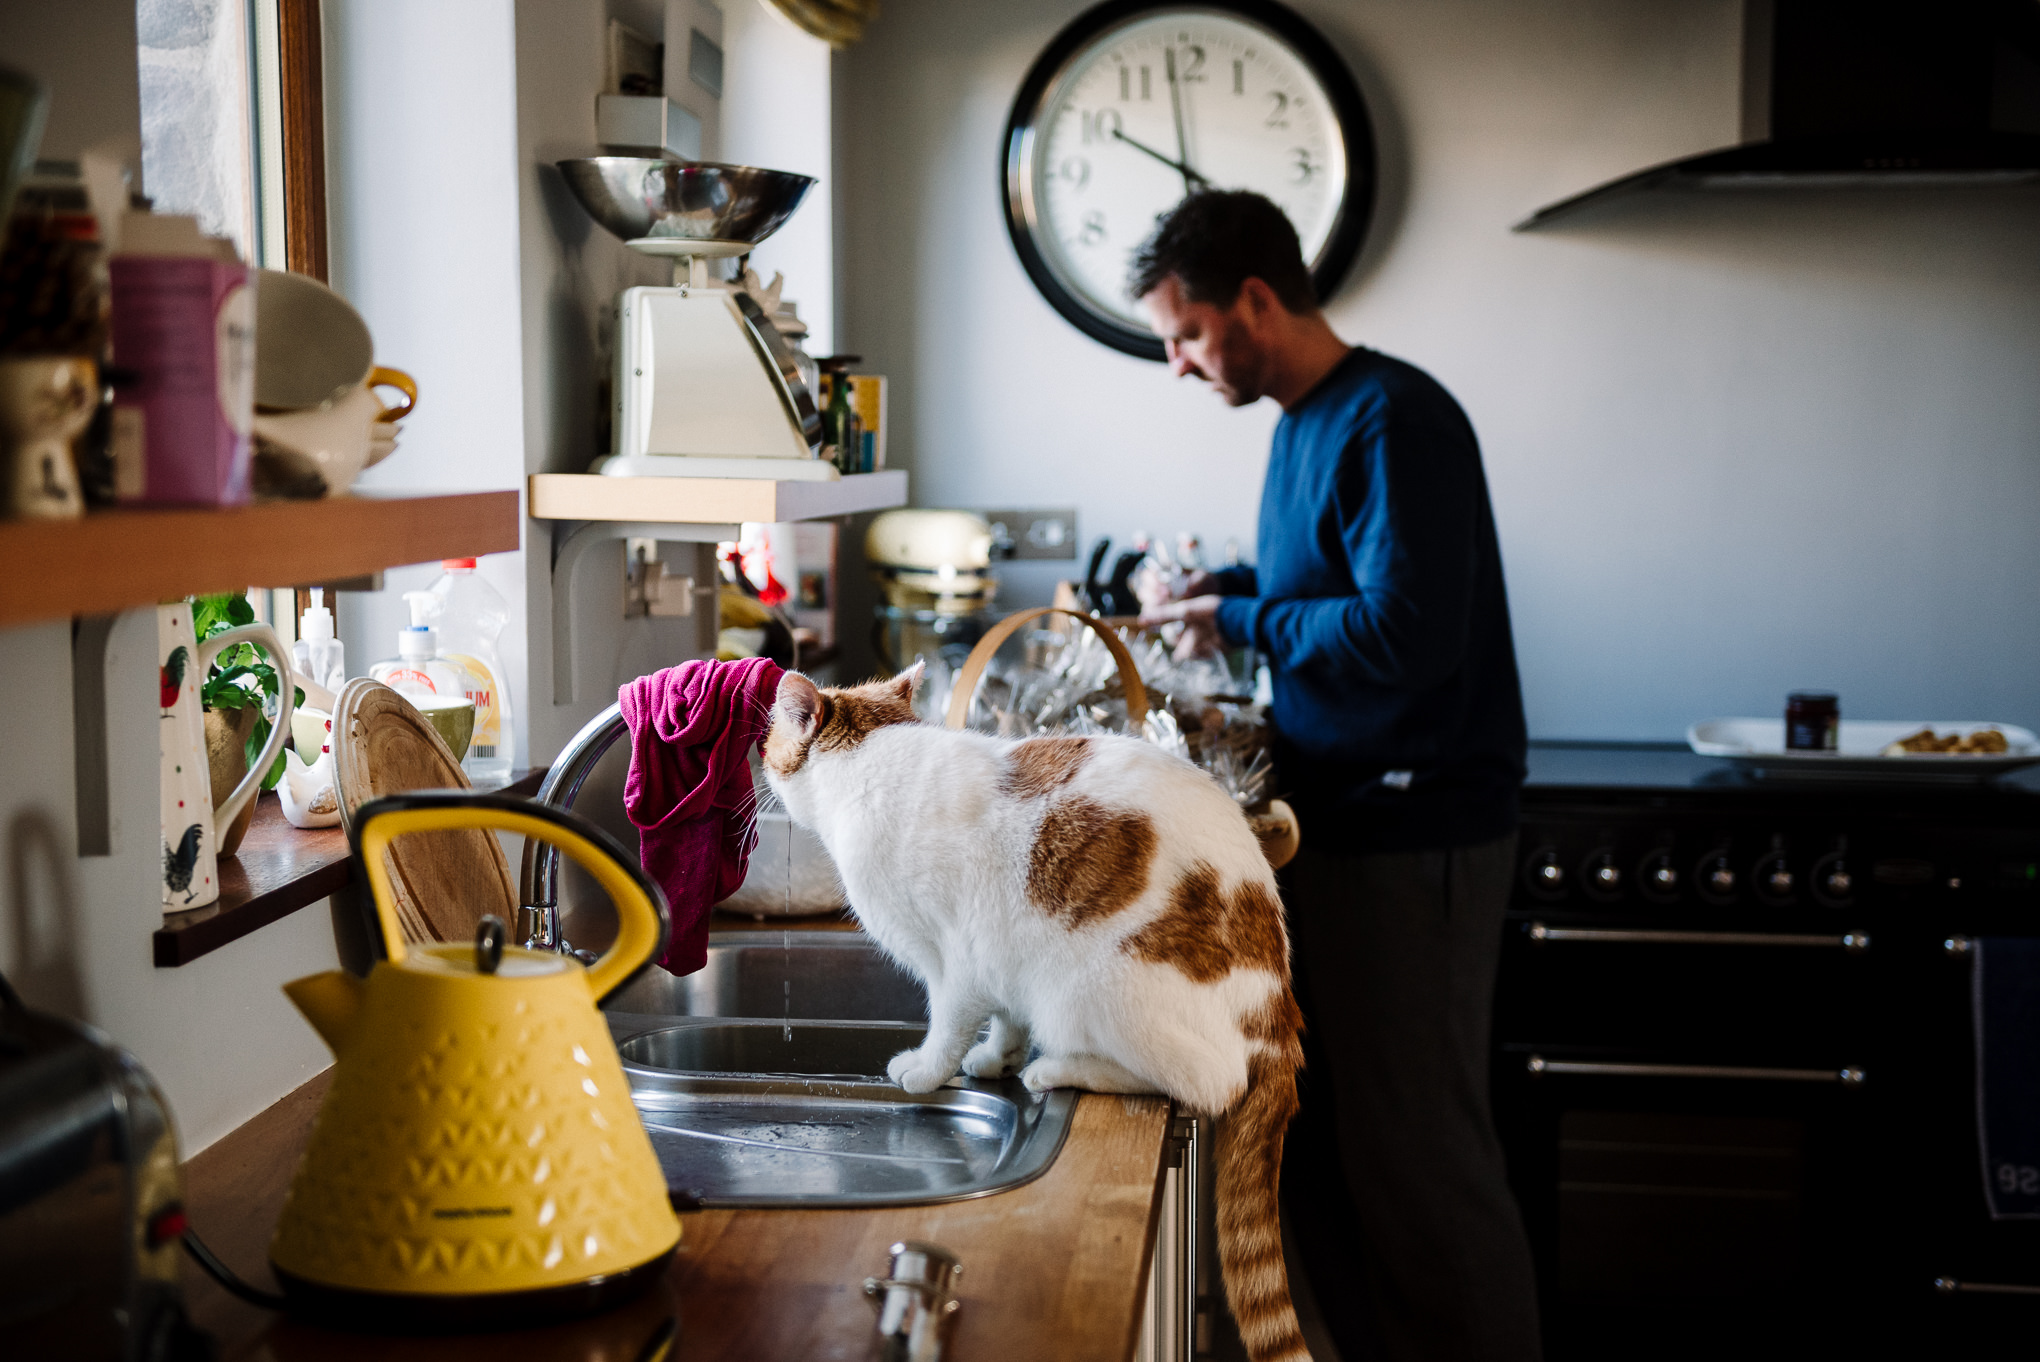 Documentary photo of the morning - cat drinking from the kitchen tap